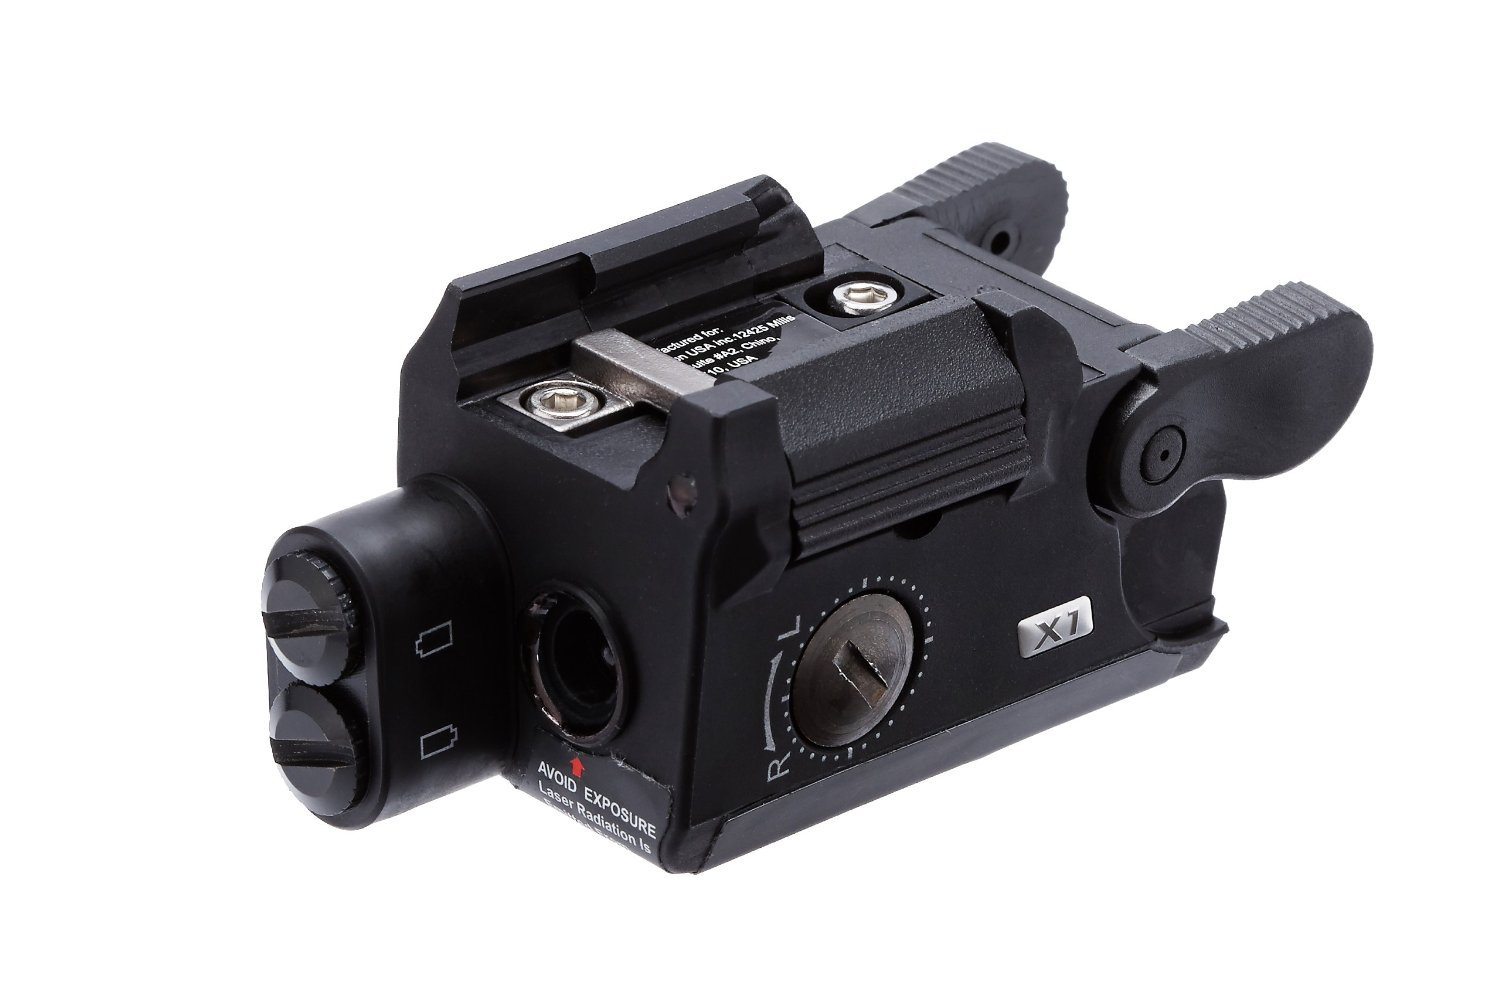 Beamshot X1-G Green Laser Sight, Black